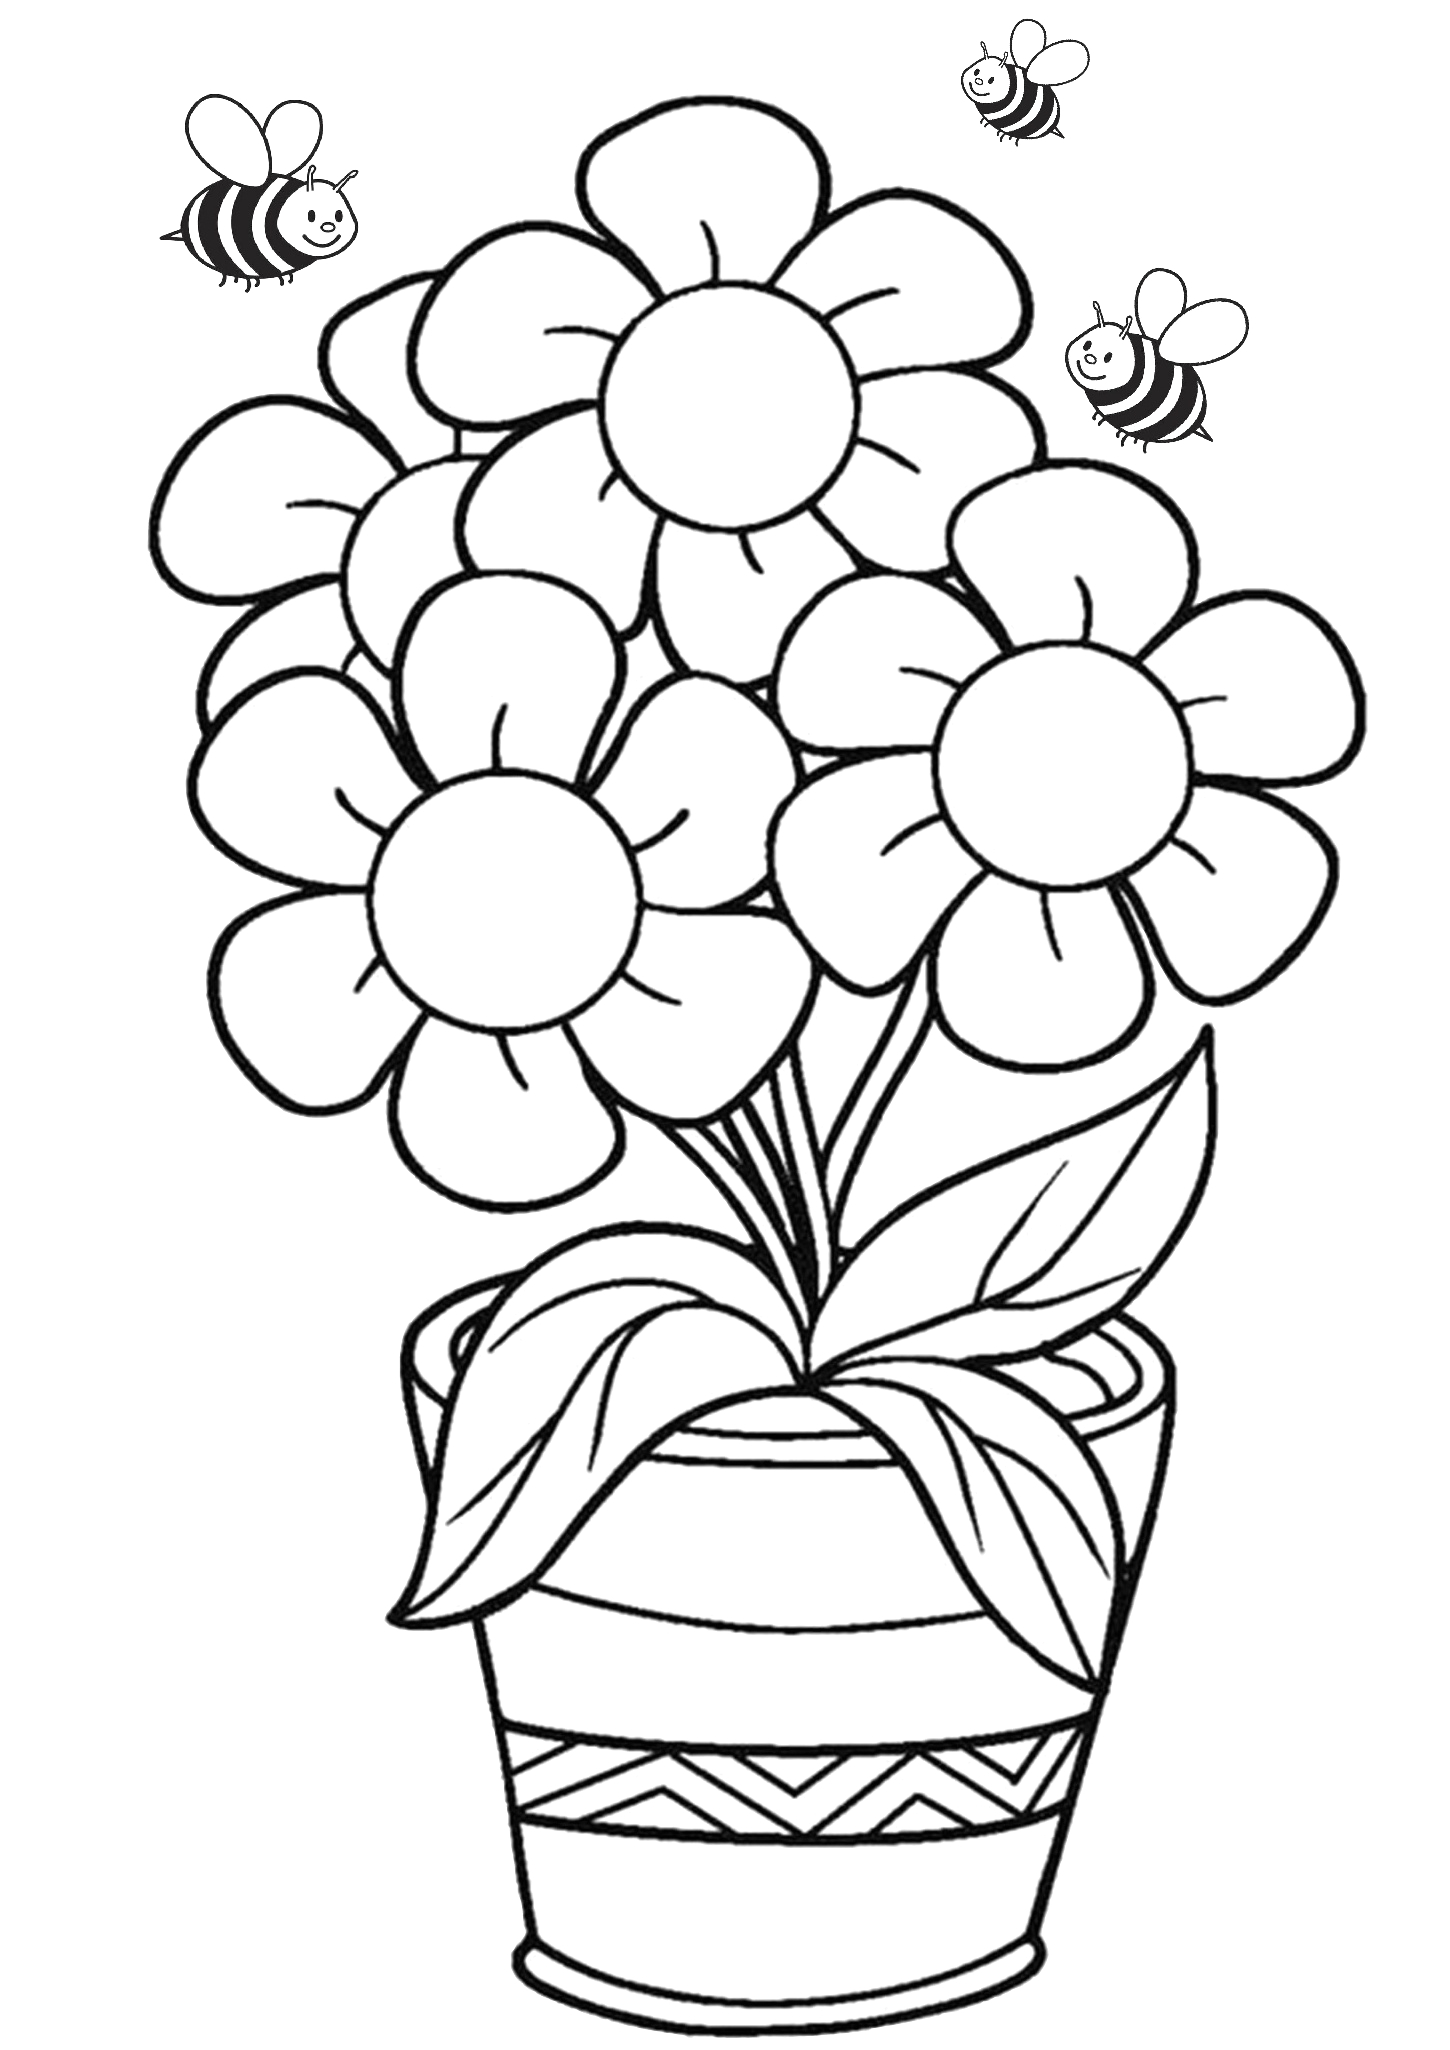 Free Printable Flower Coloring Pages for Preschoolers 36 Printable Flower Coloring Pages for Adults & Kids